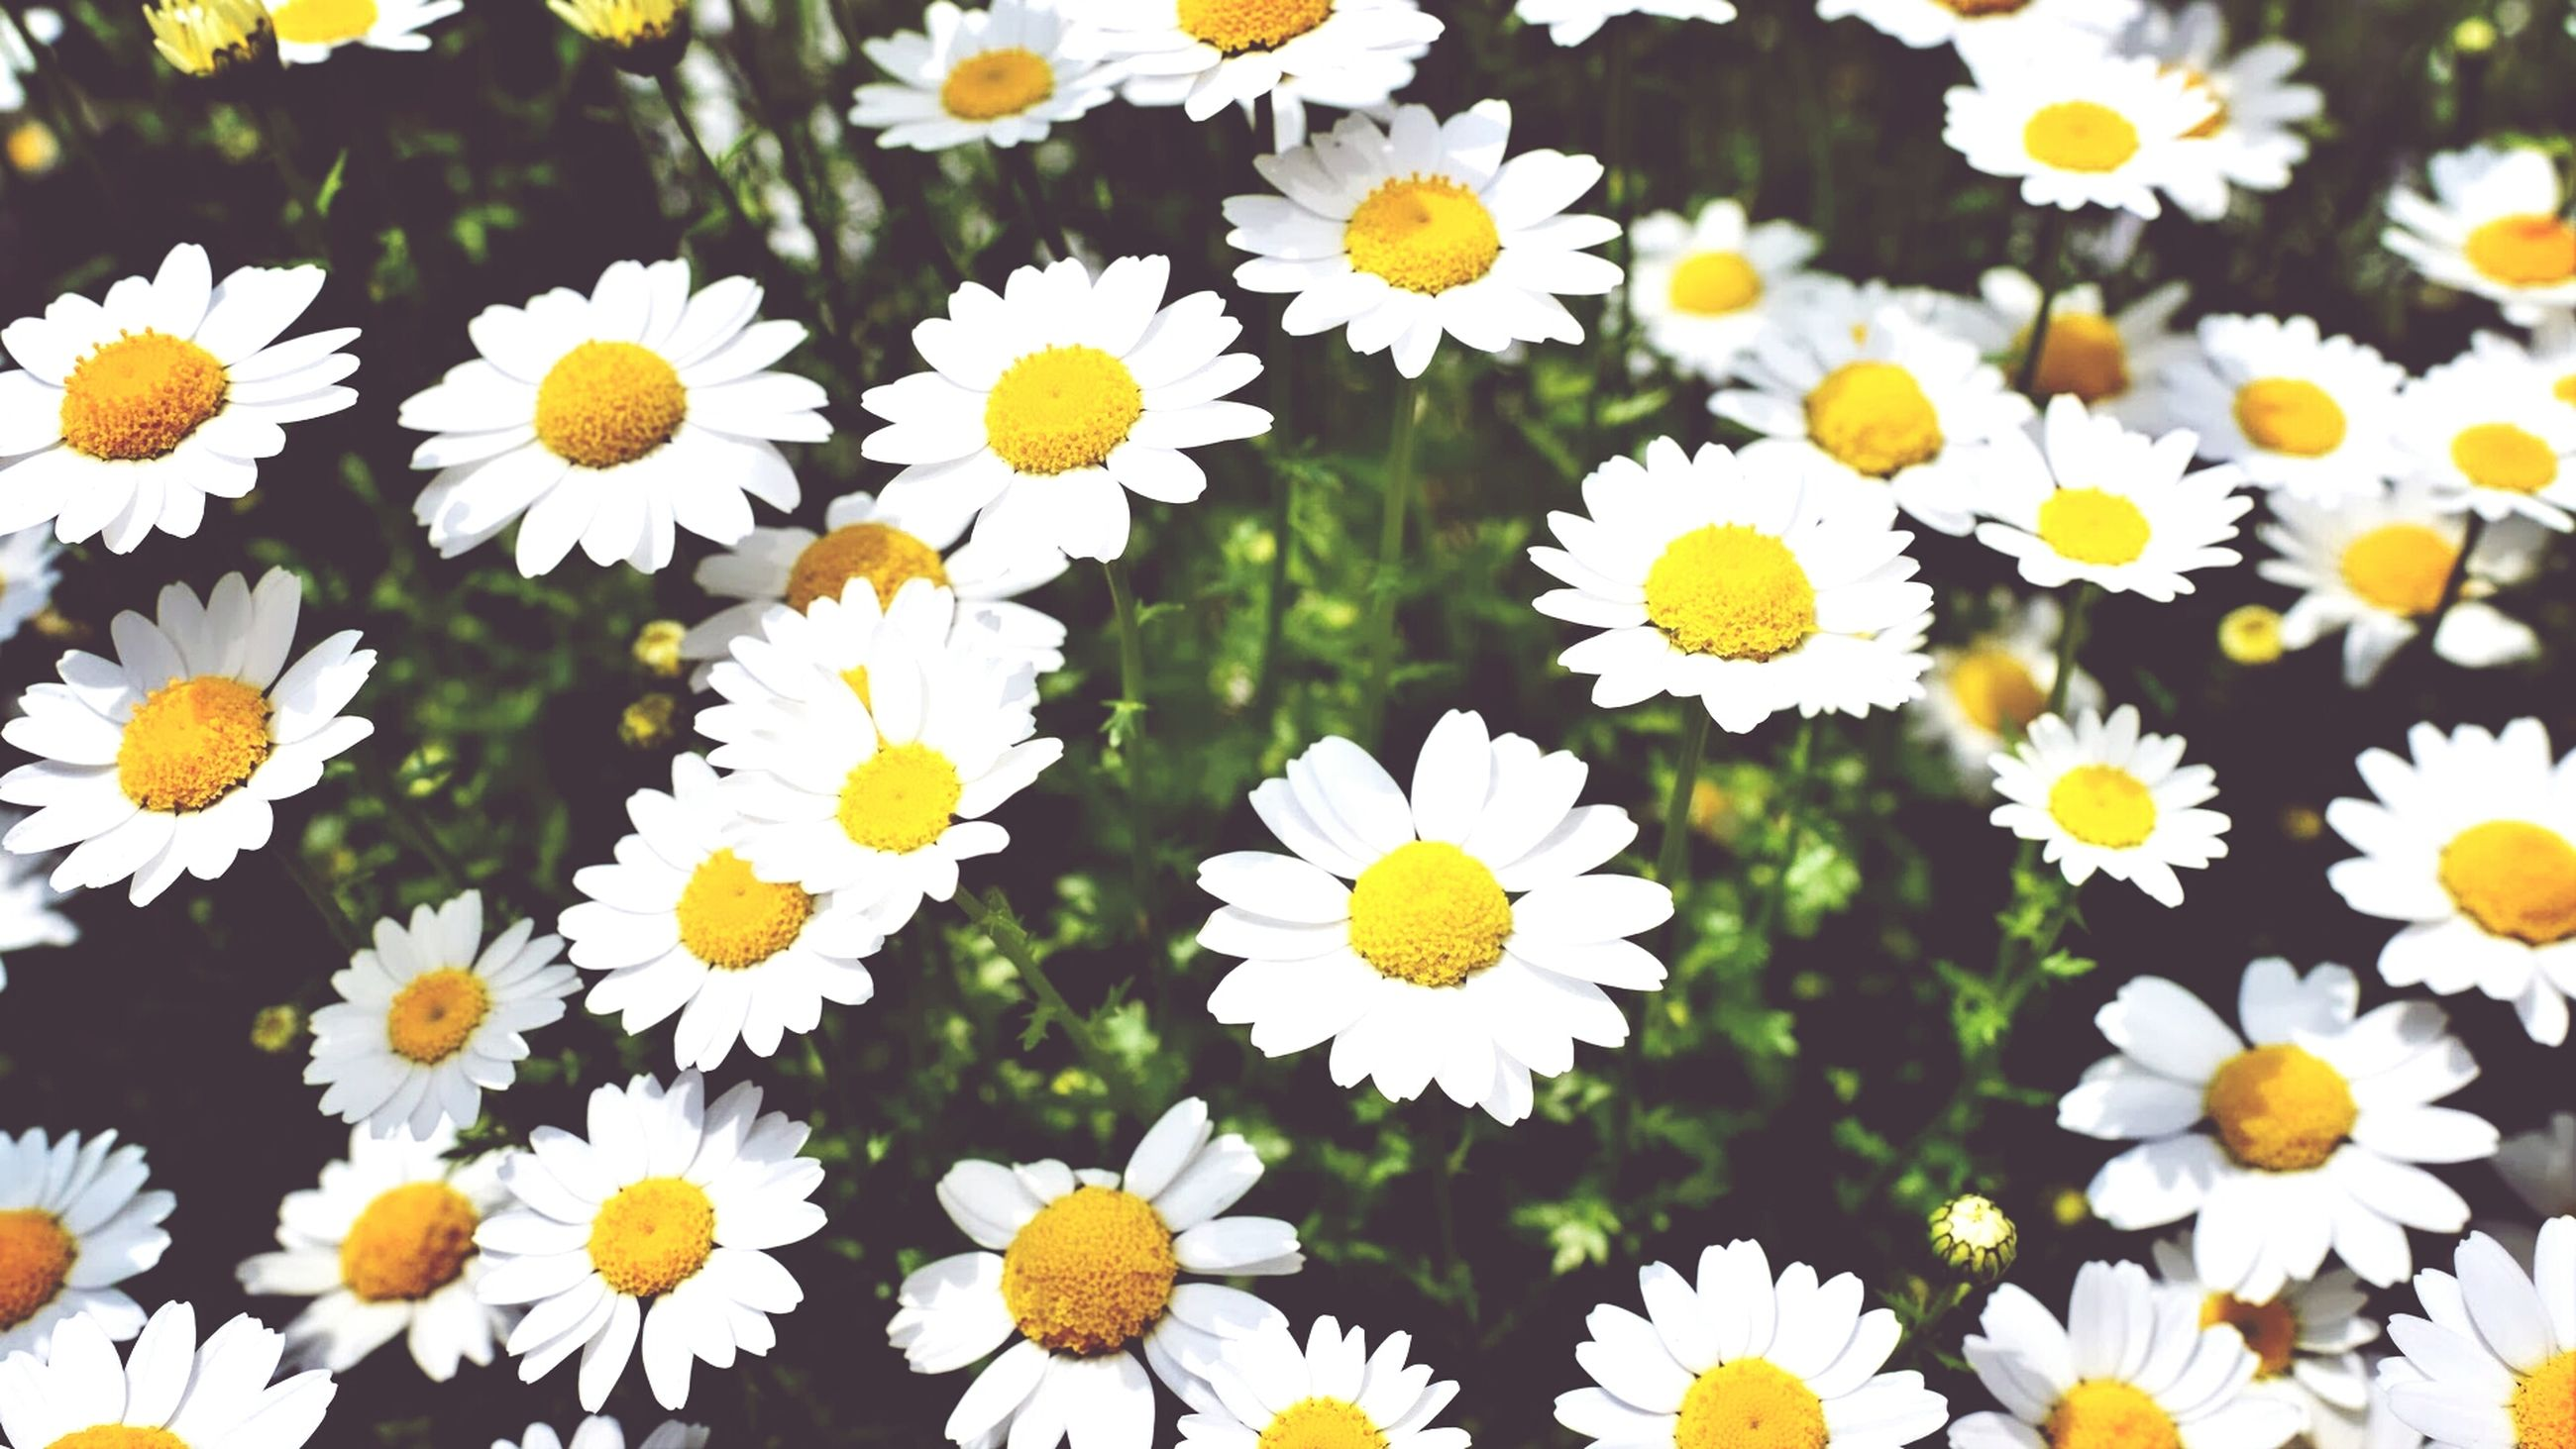 flower, freshness, daisy, fragility, yellow, petal, growth, flower head, white color, beauty in nature, nature, blooming, full frame, plant, high angle view, pollen, backgrounds, field, close-up, in bloom